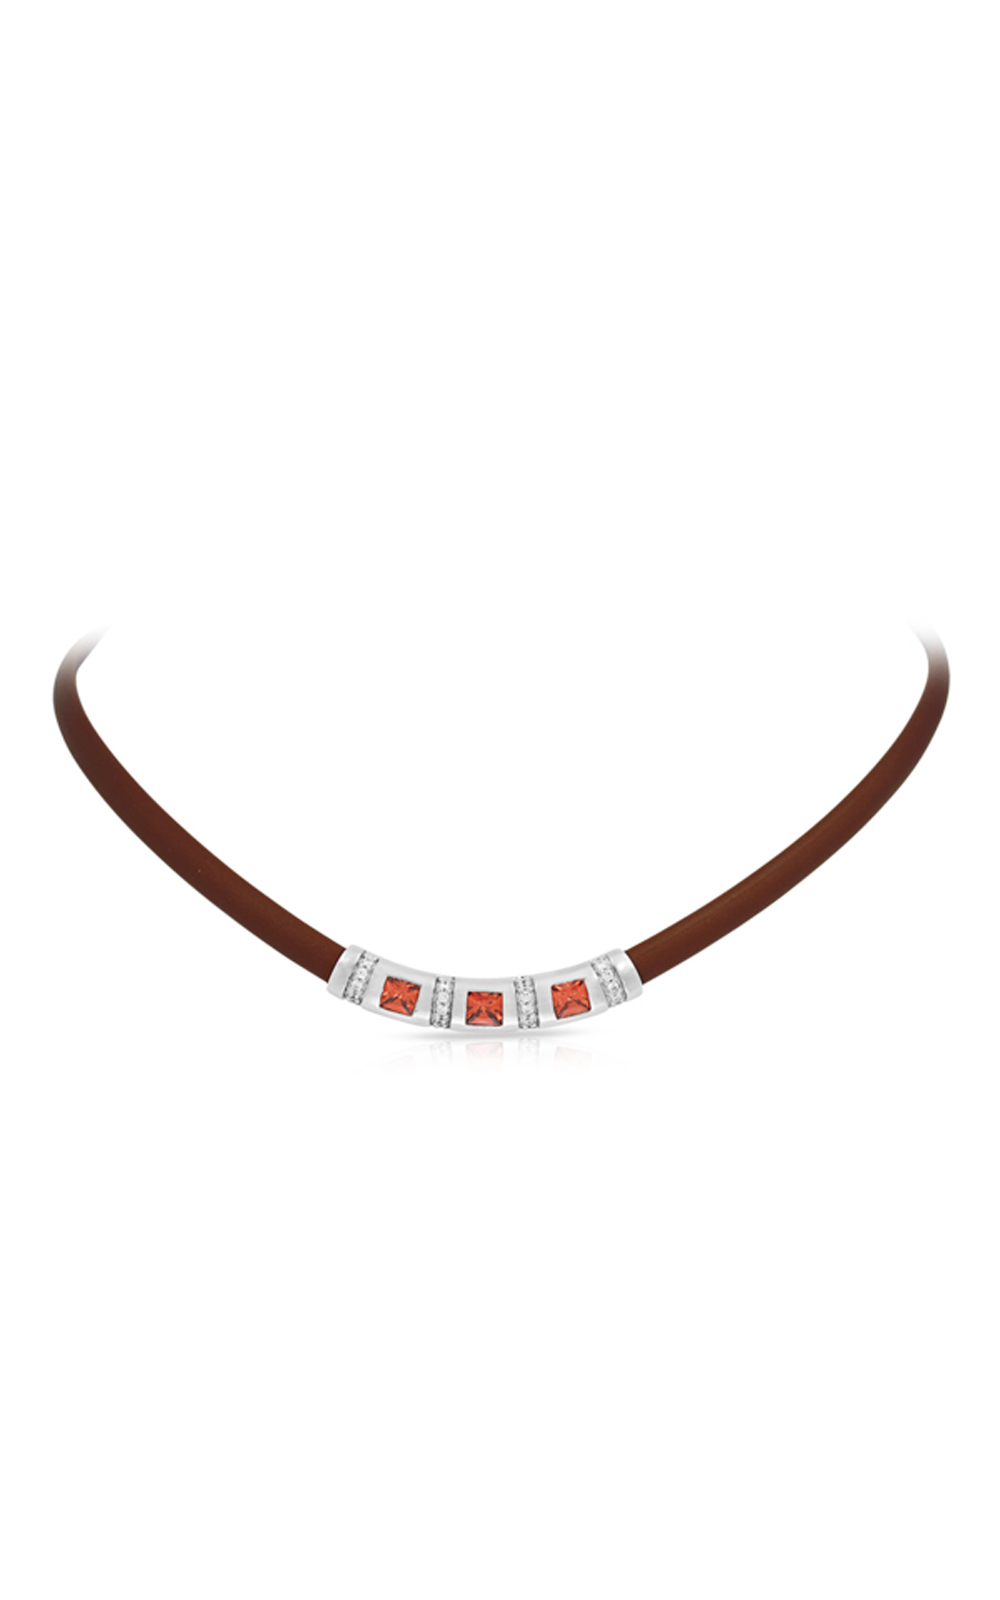 Belle Etoile Celine Plum and Amethyst Necklace 05051320403 product image